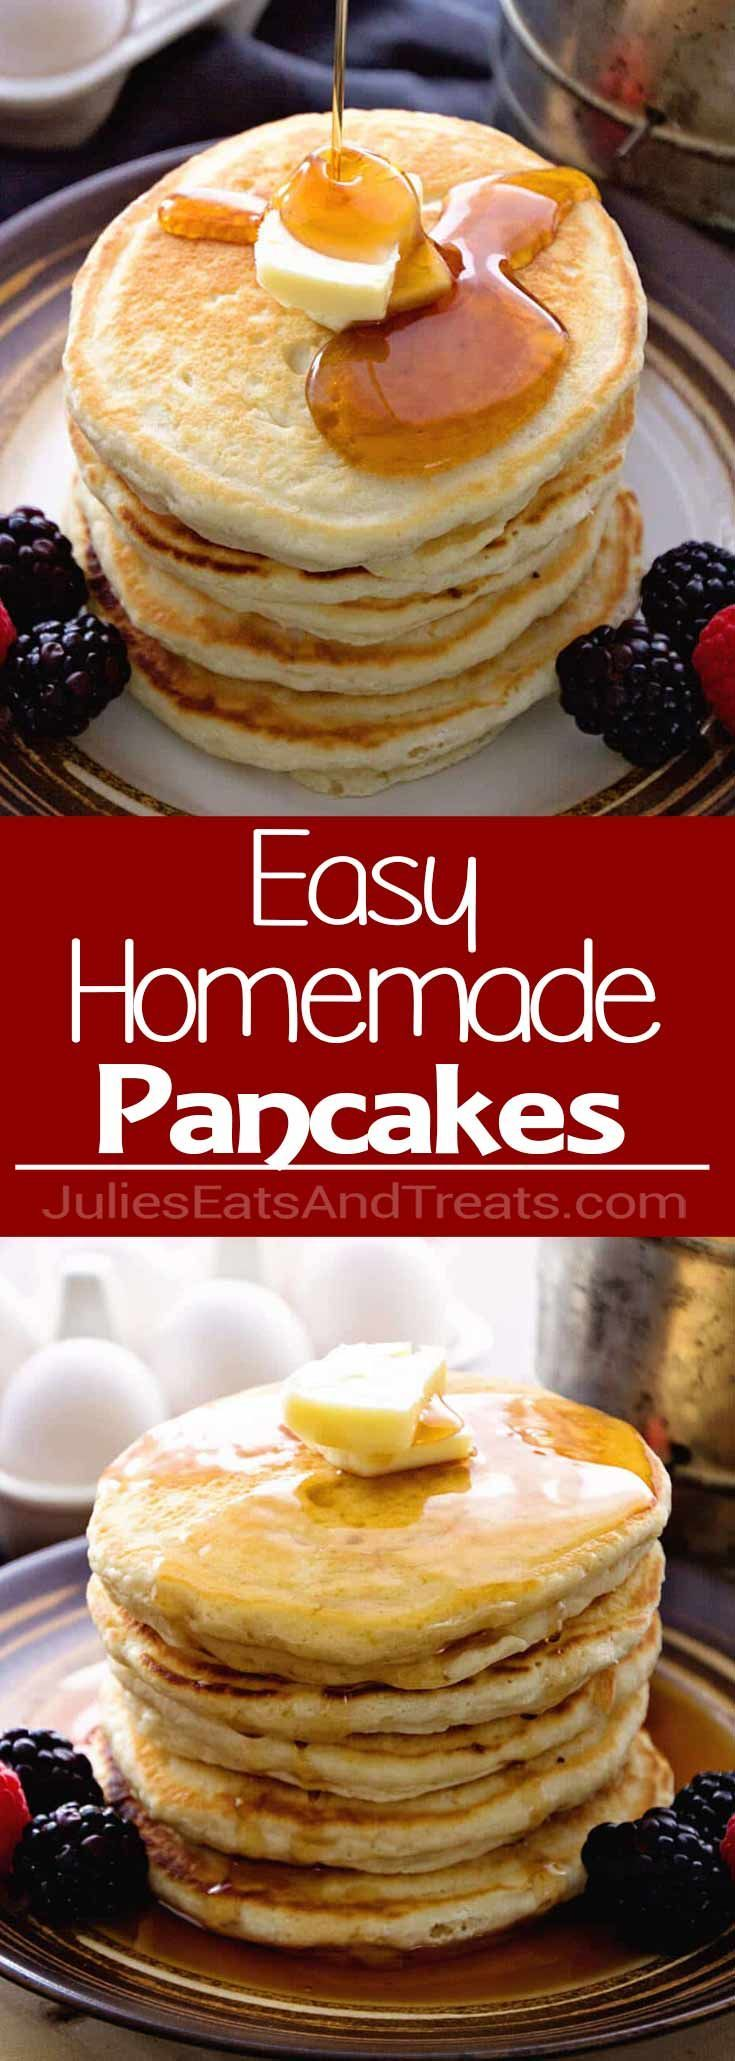 Easy Homemade Pancakes Recipe ~ Light, Fluffy, Delicious Pancakes Recipe Made with Pantry Staples that You Will Have in your House! Never go back to Pancake Mix! via @julieseats